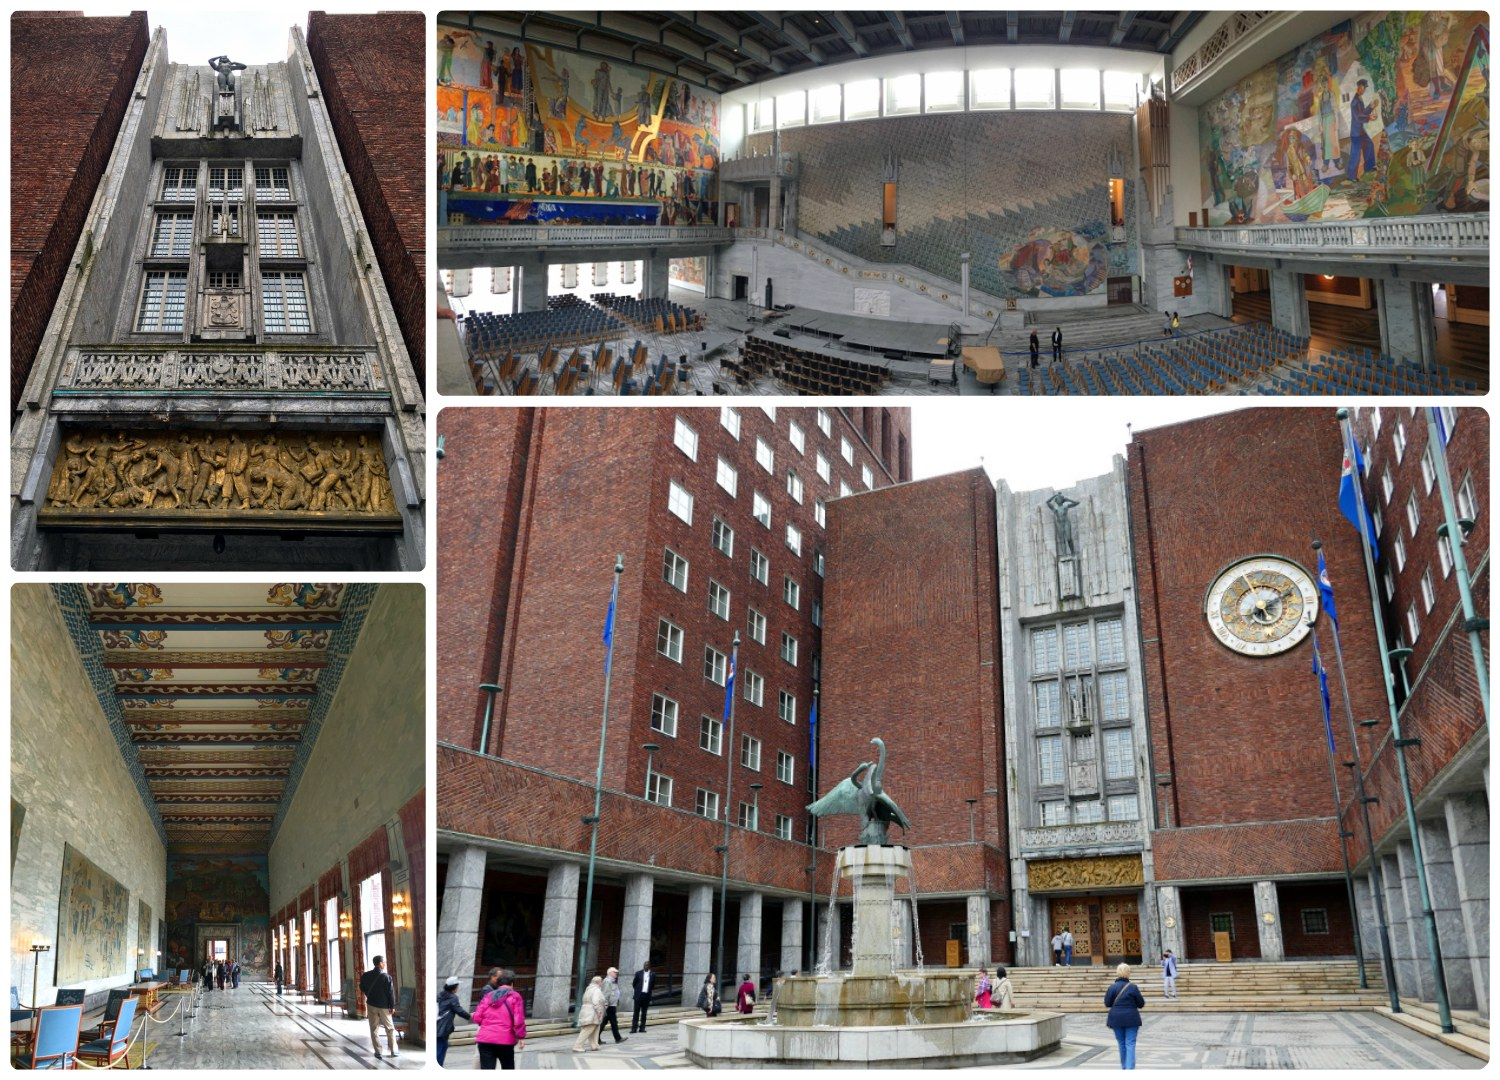 Clockwise (top to bottom): Looking up at the exterior of theOslo City Hall from the entrance doors, panoramic of the Nobel Peace Price Ceremony room, the front of City Hall, each room in City Hall is detailed with art from the walls to the ceiling.